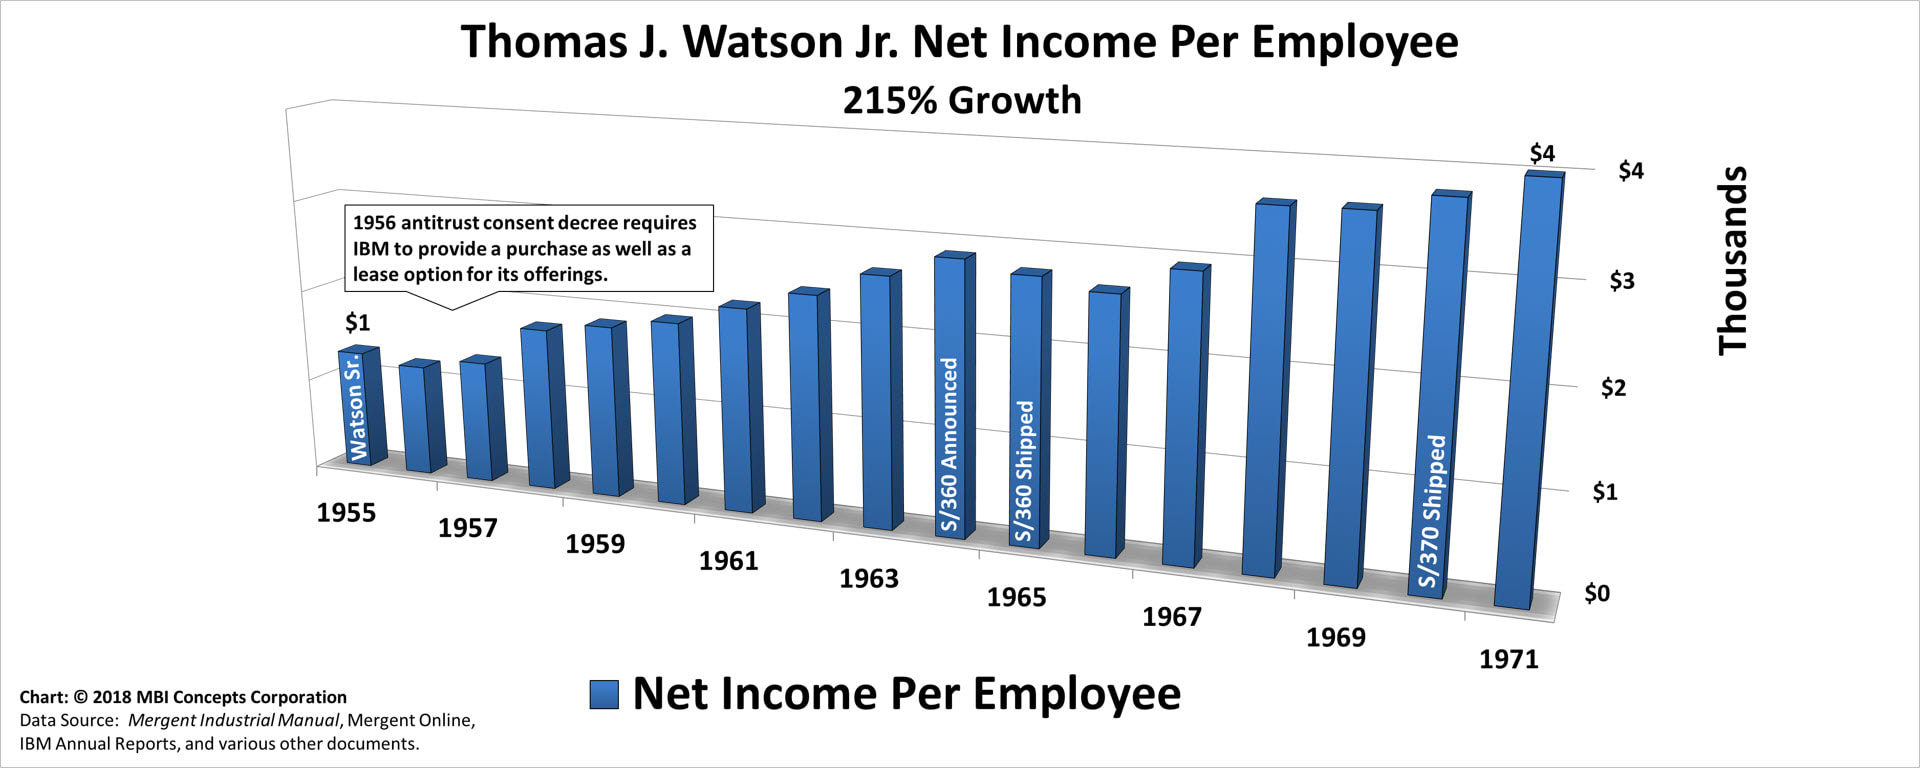 Bar chart of Thomas J. Watson Jr.'s Yearly Net Income per Employee over his 15 years as IBM's CEO from 1956 to 1971